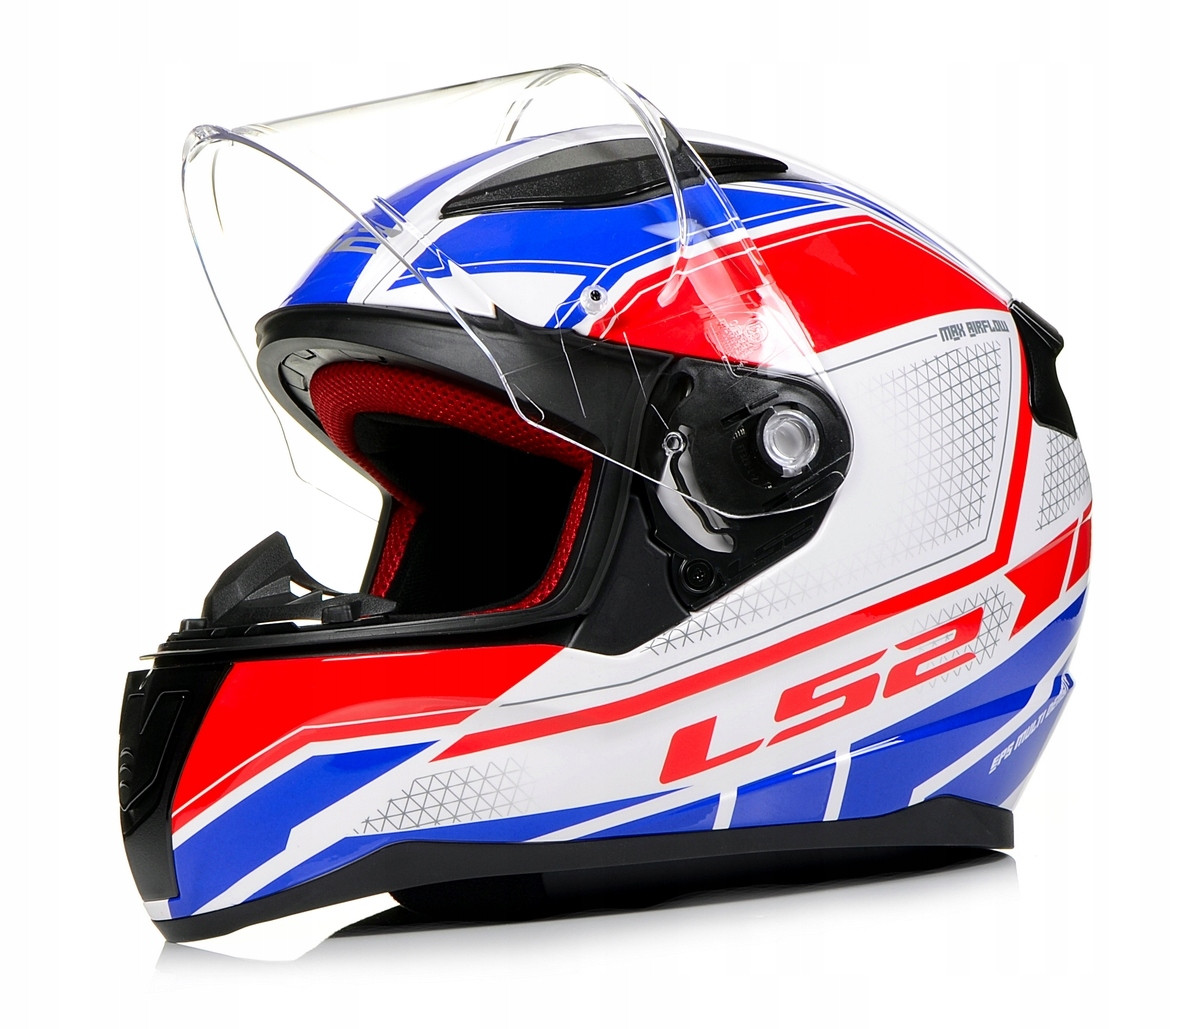 Мото шлем LS2 FF353 Rapid Infinity White/Red/Blue